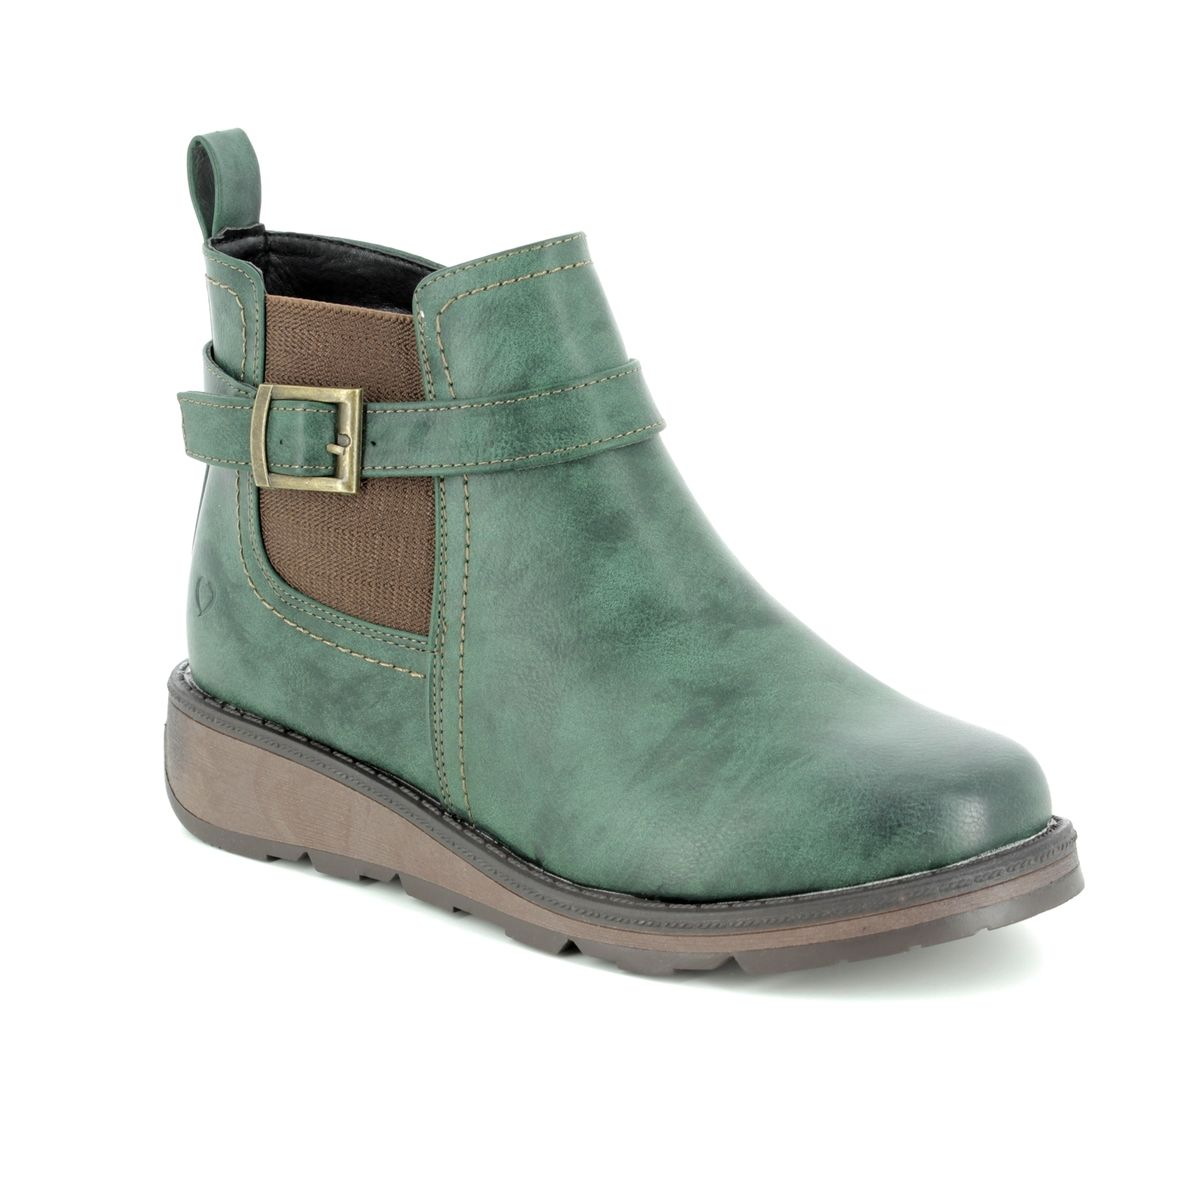 3583086bf6f3 Heavenly Feet Ankle Boots - Green - 8509 90 KENDAL